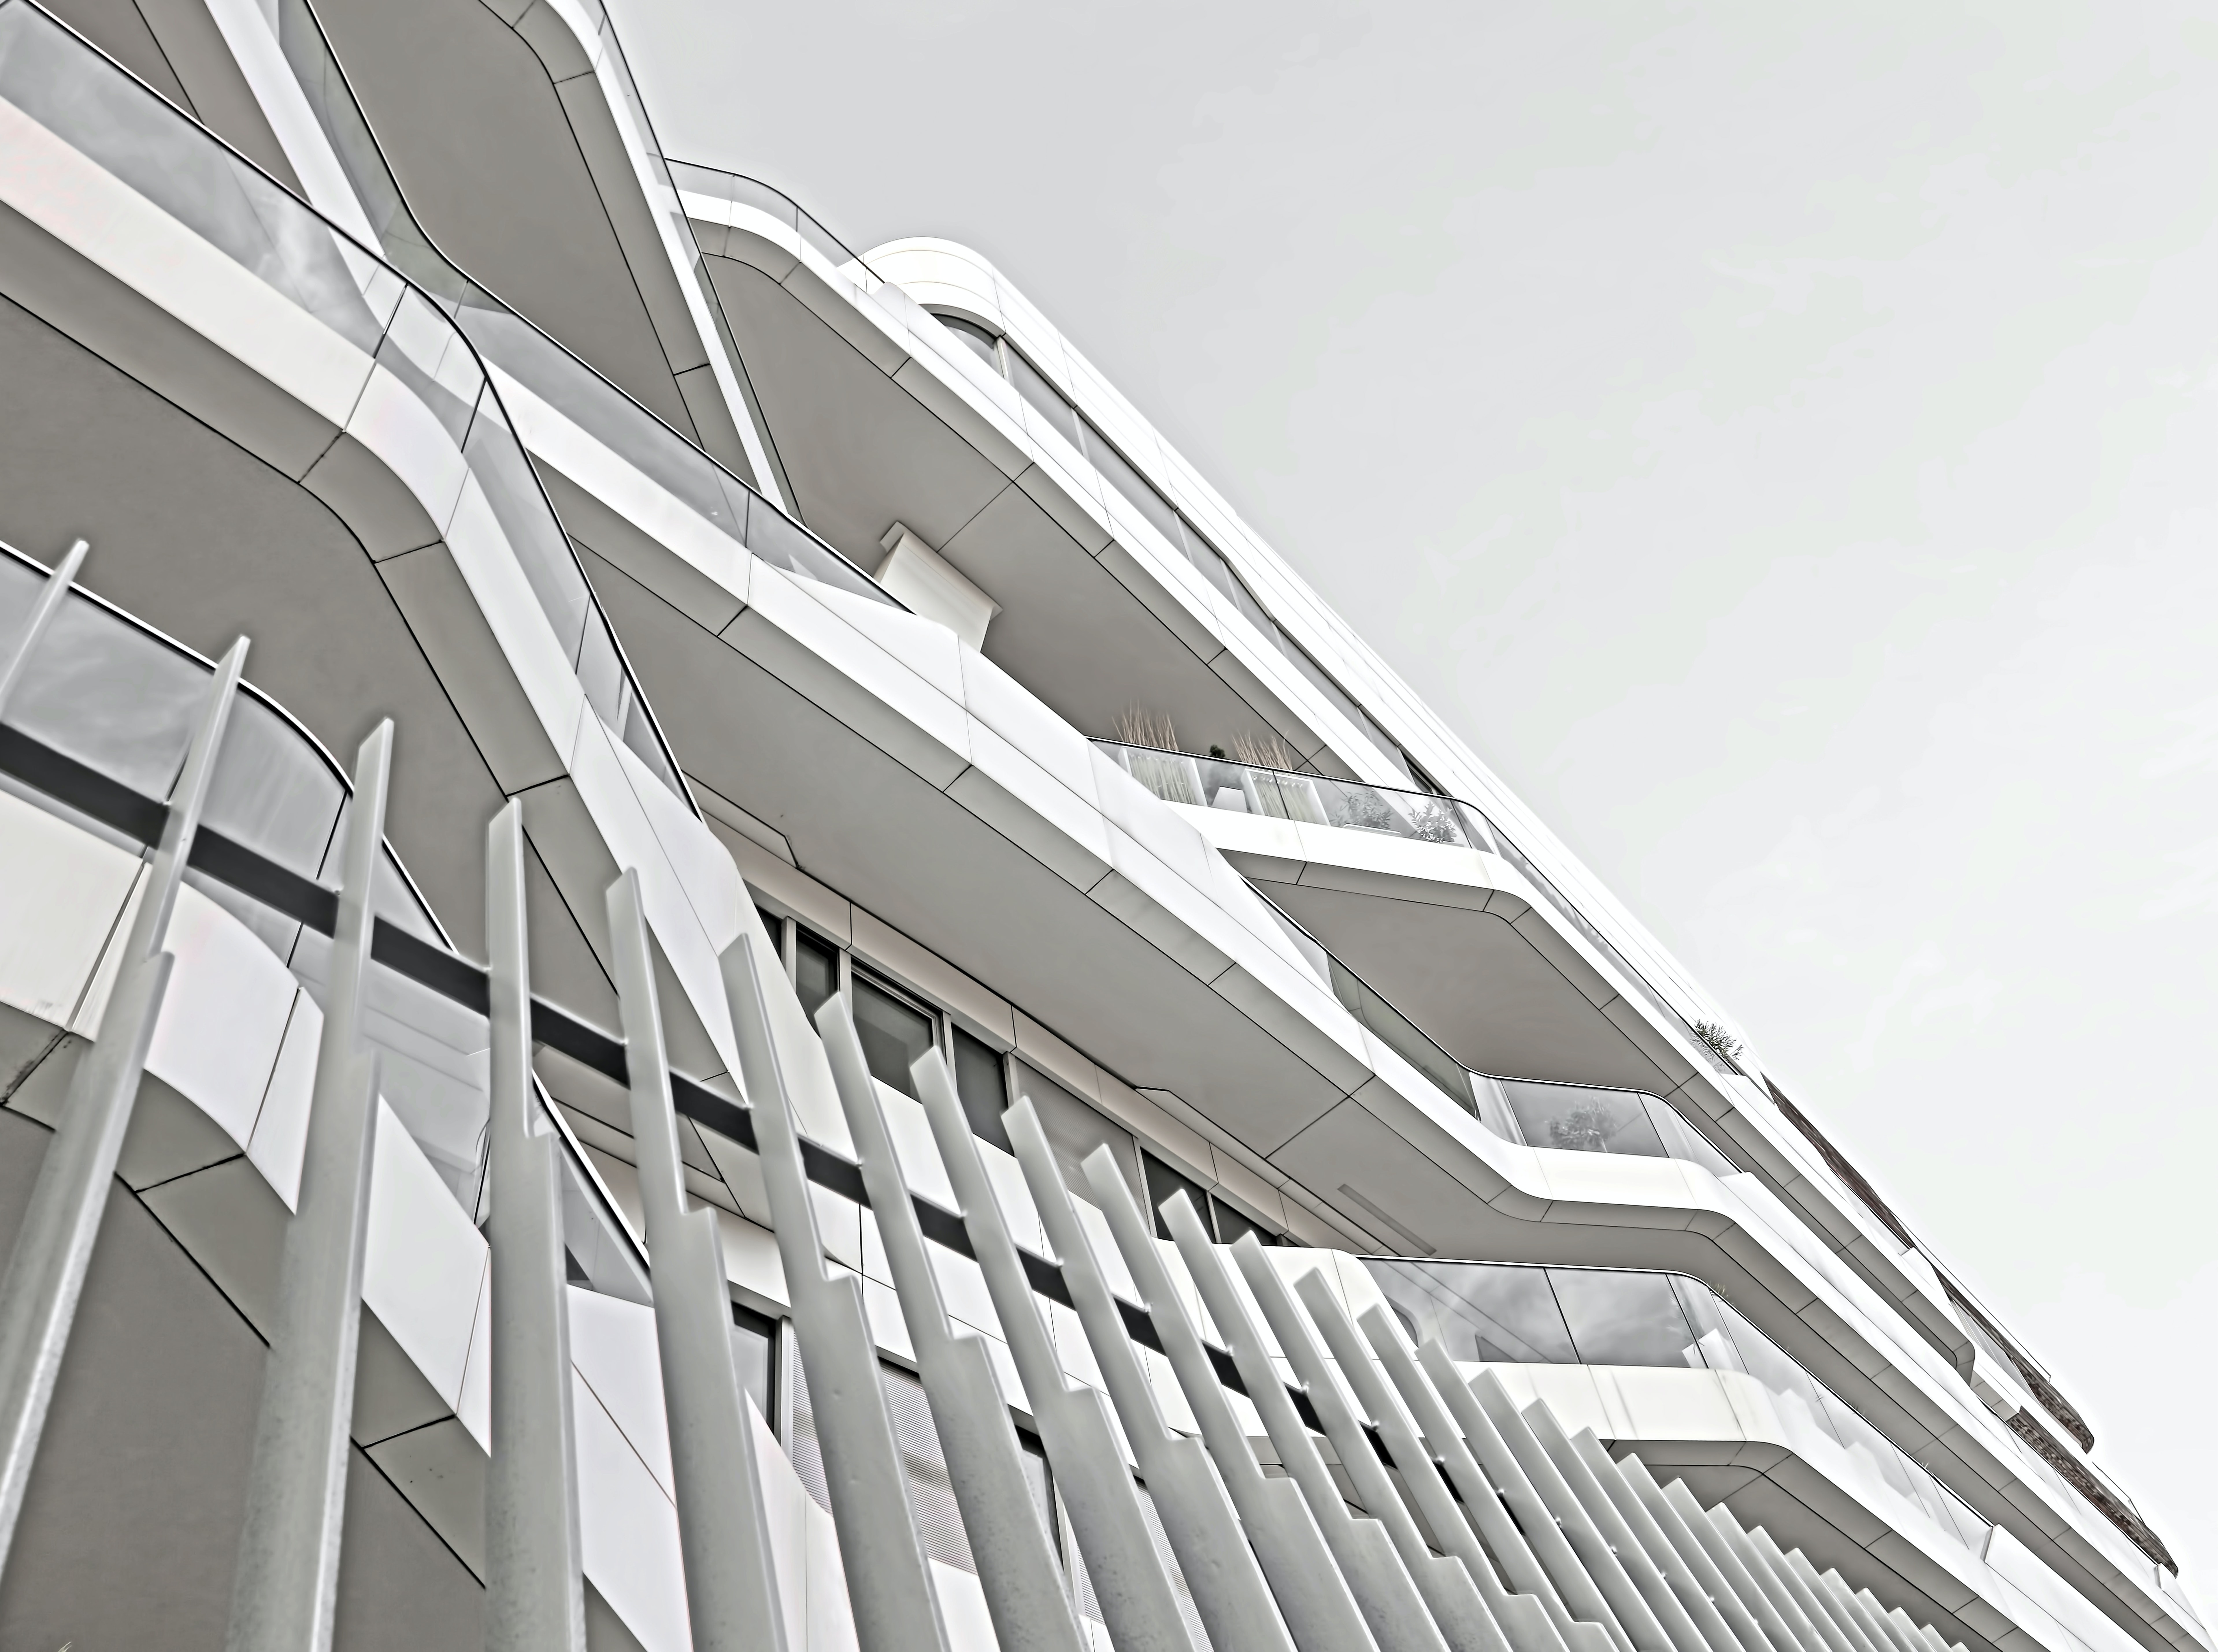 Patterns formed by unique white architecture on an office building